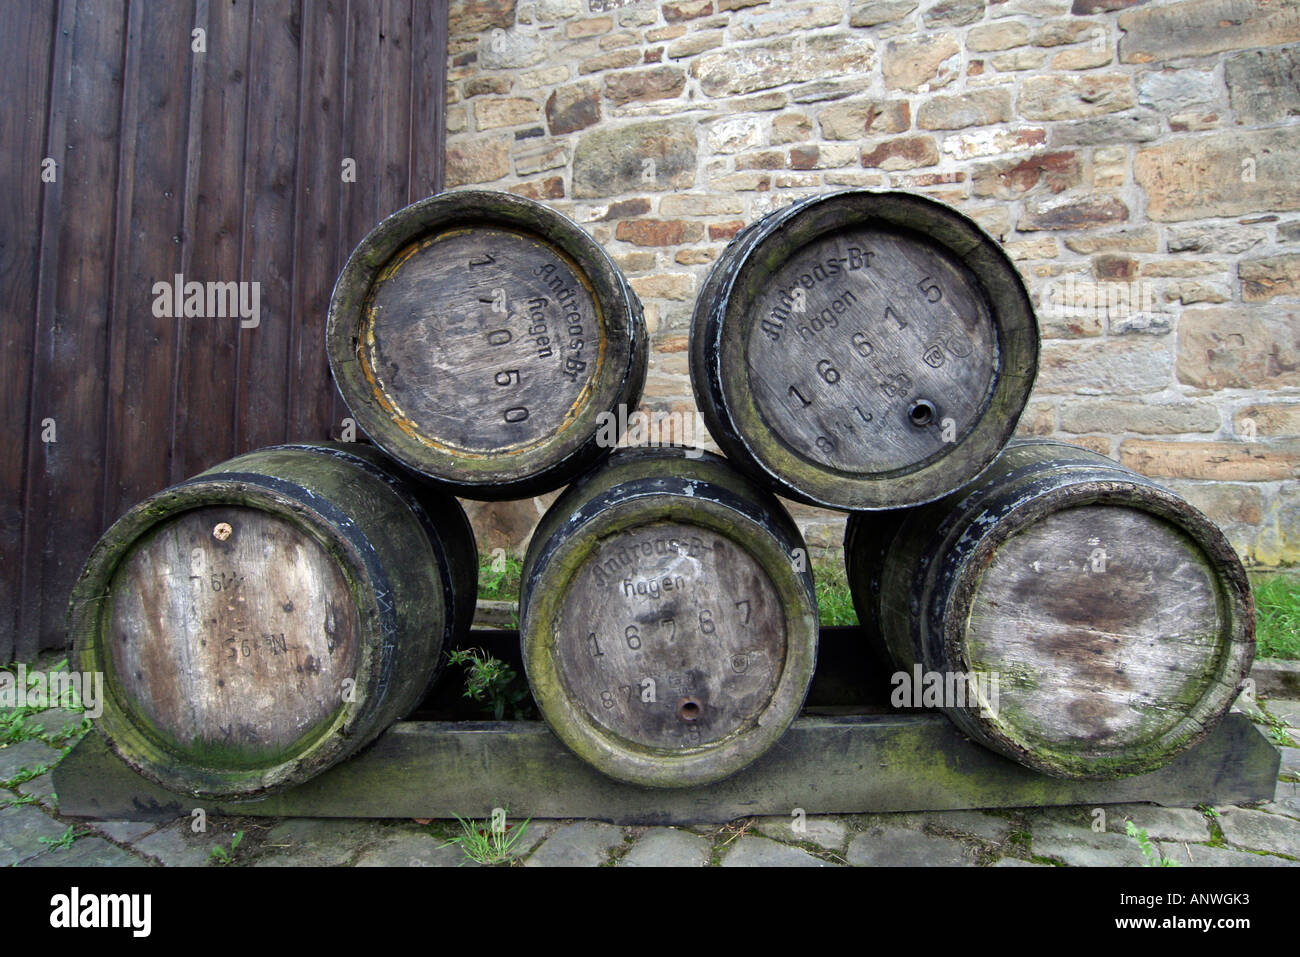 Old beer barrels, stacked - Stock Image